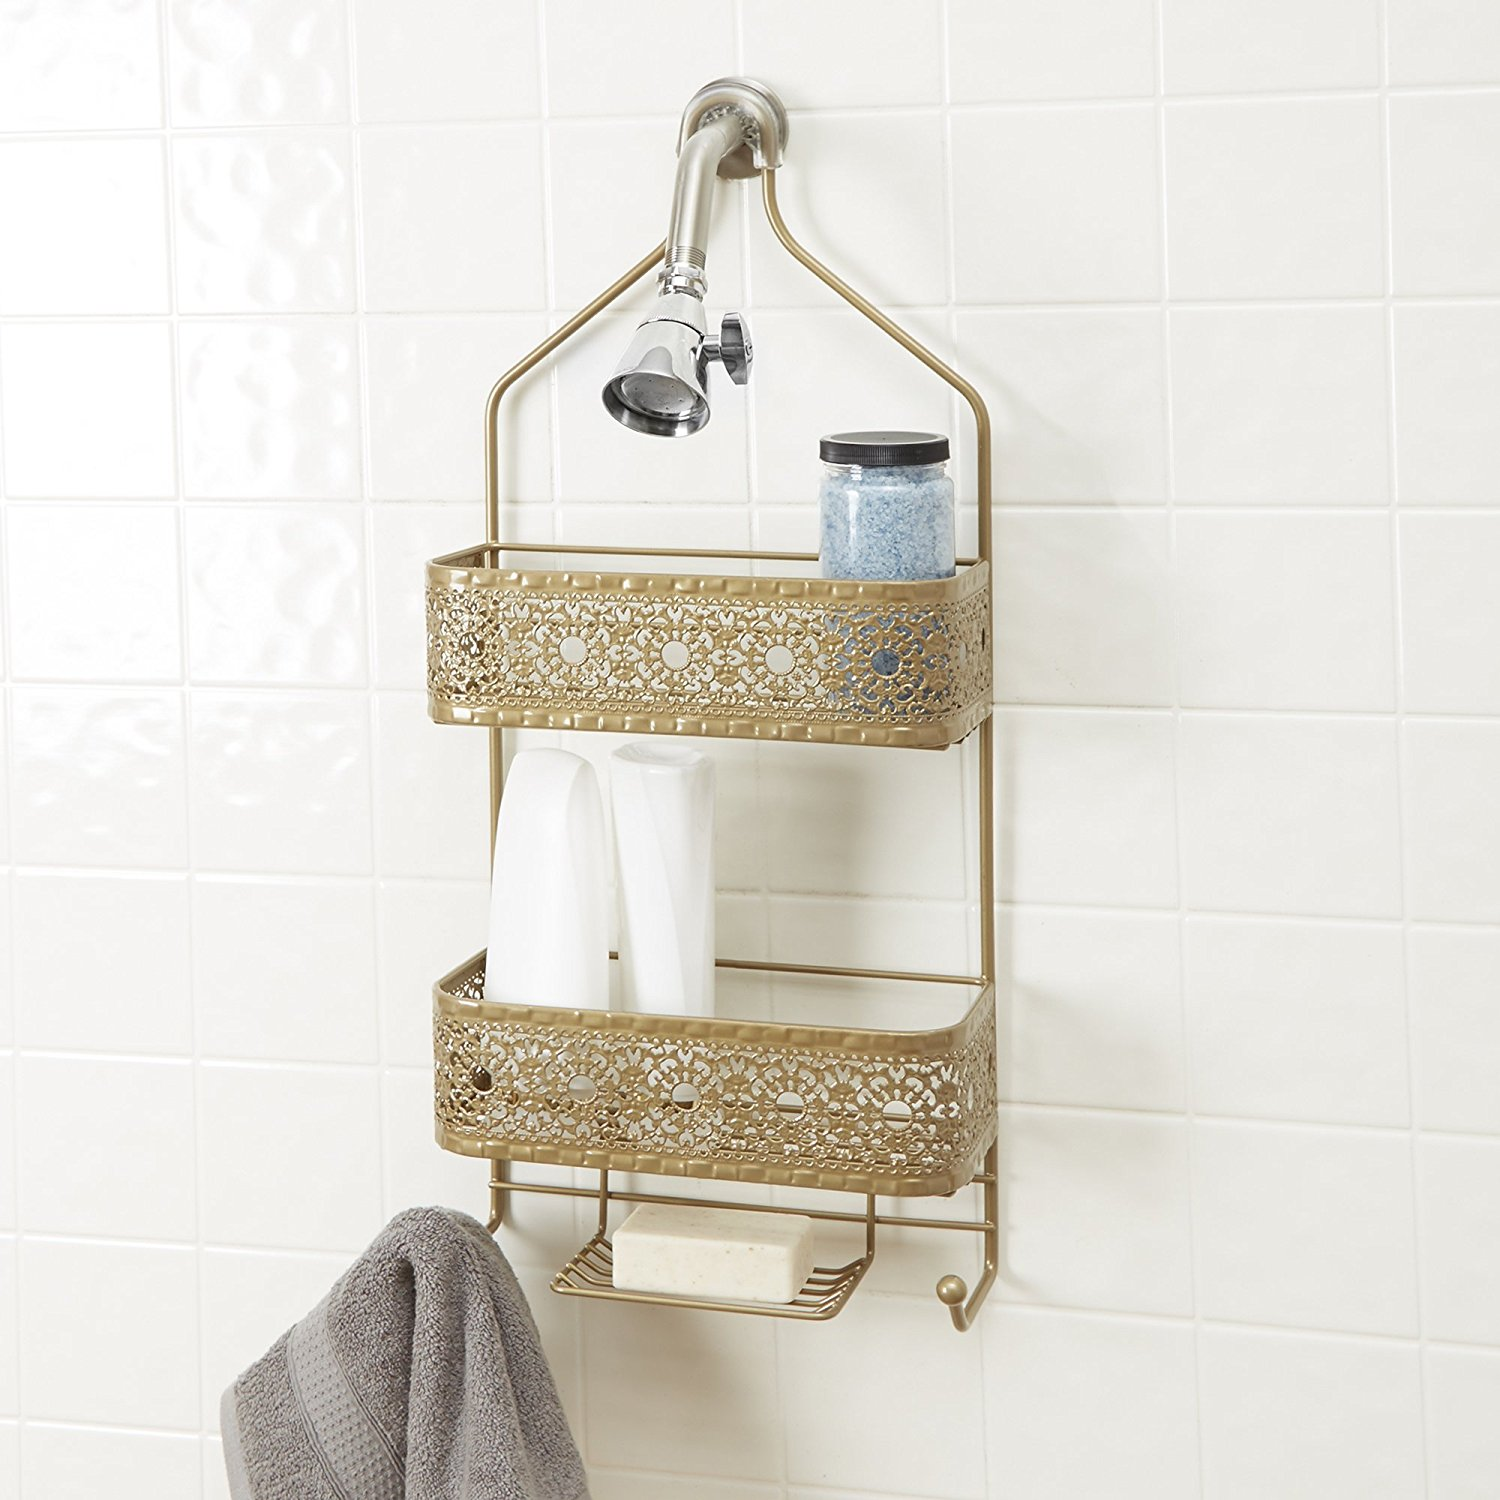 Buy Balljoint Rose Gold Shower Caddy in Cheap Price on Alibaba.com